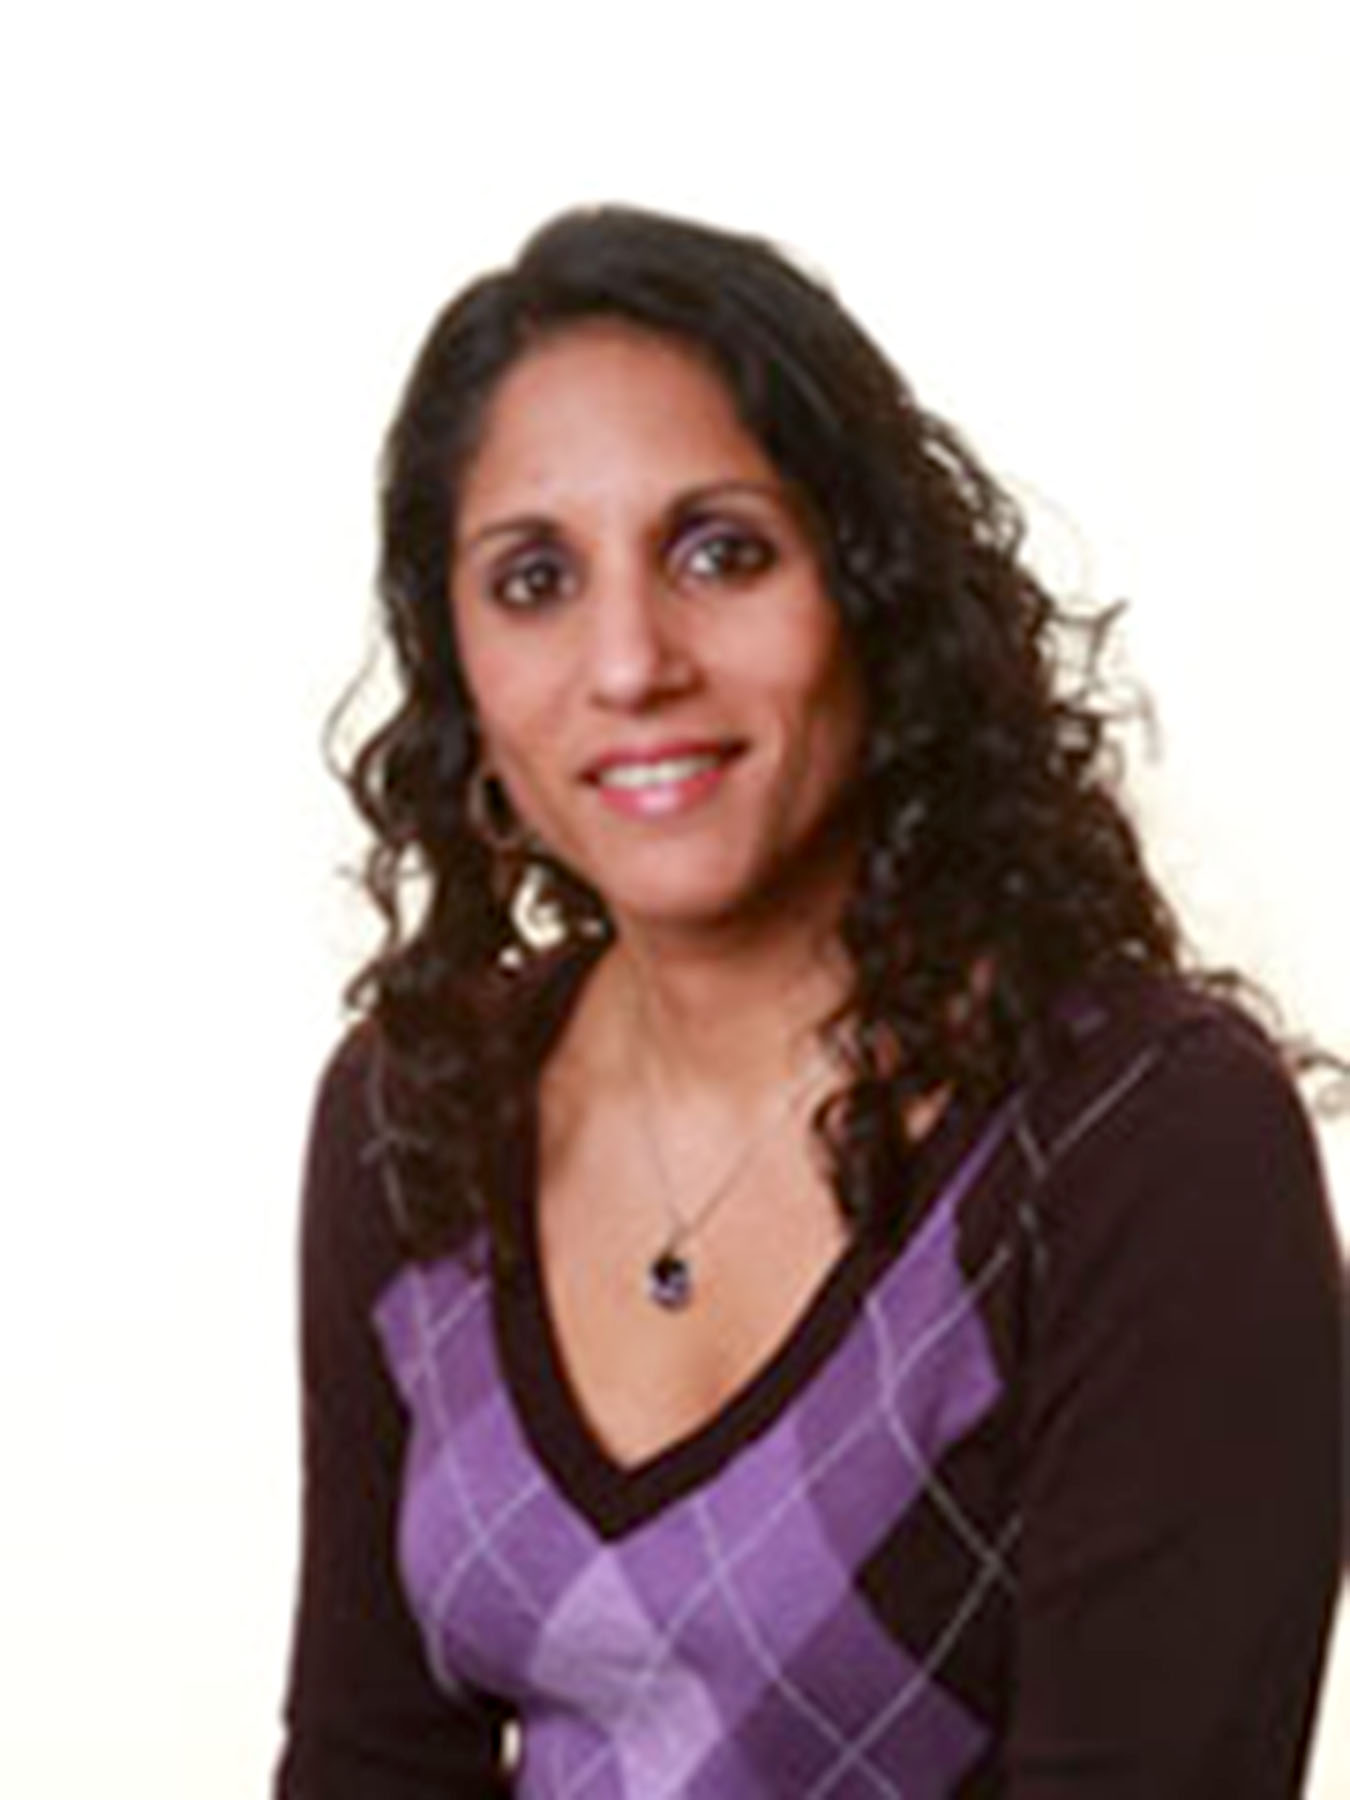 Neena Tripathy, Carle Illinois College of Medicine, University of Illinois at Urbana-Champaign